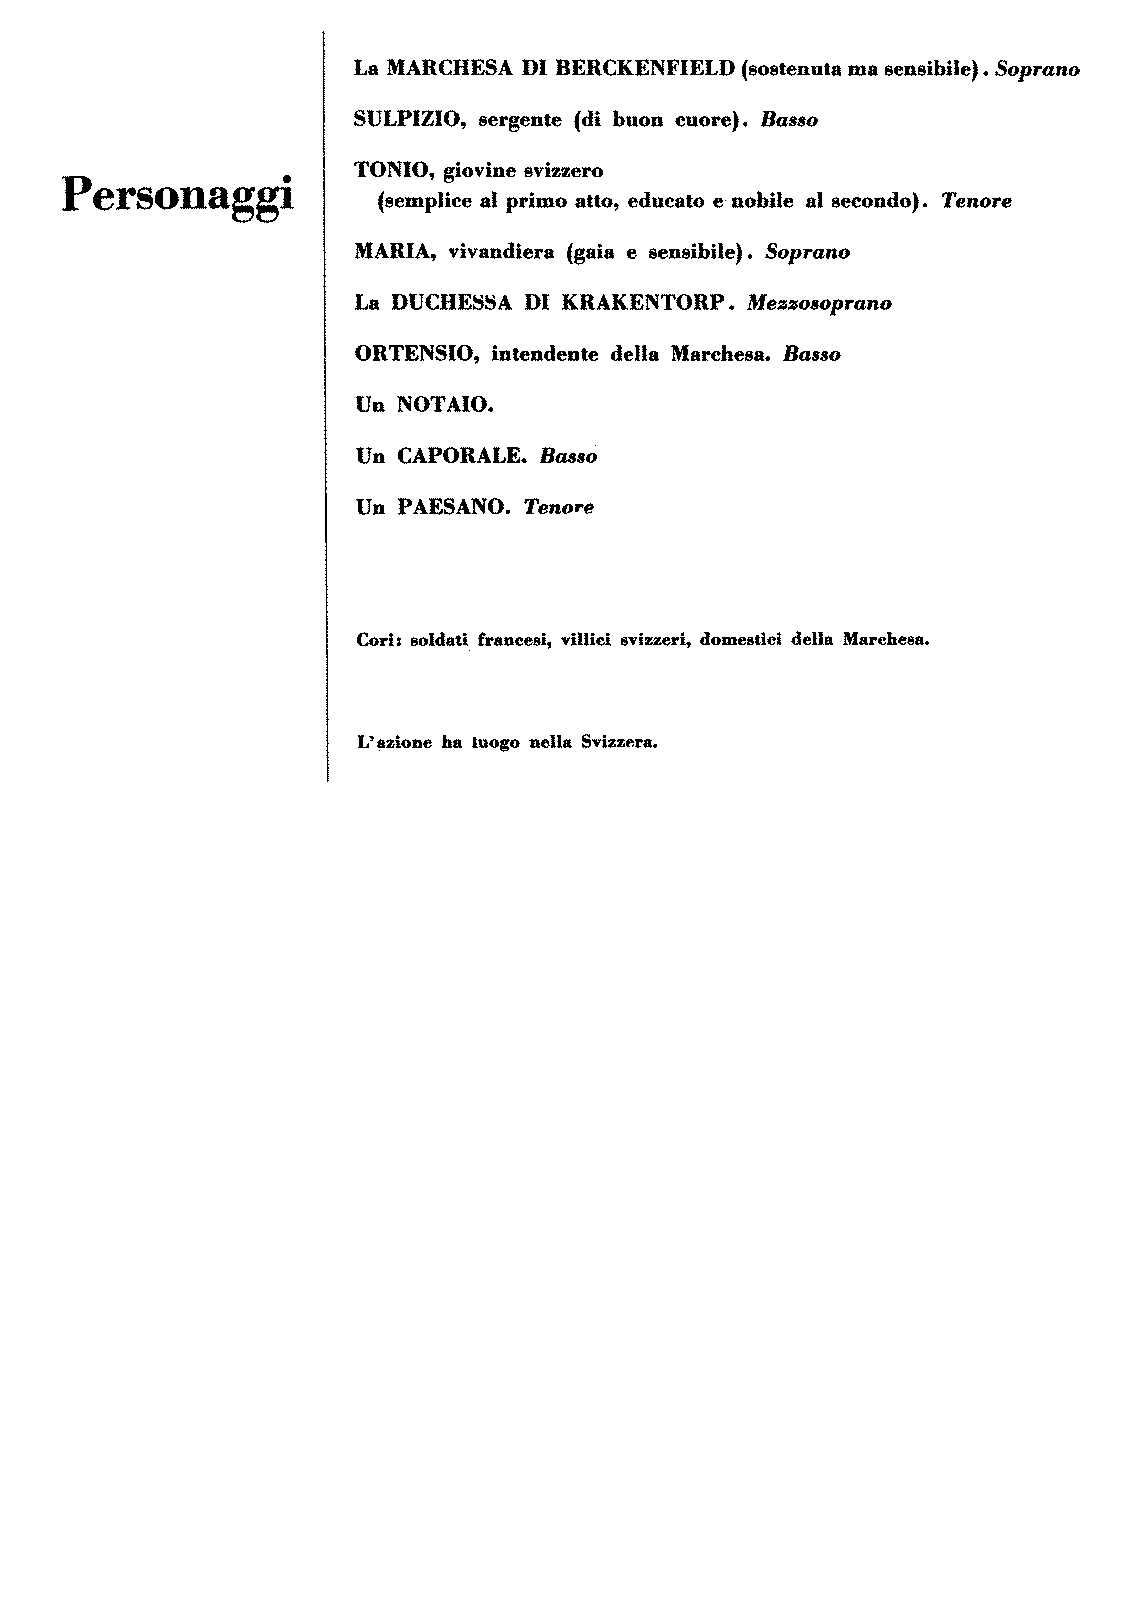 PMLP32892-Donizetti - La fille du régiment (Ricordi vocal score).pdf